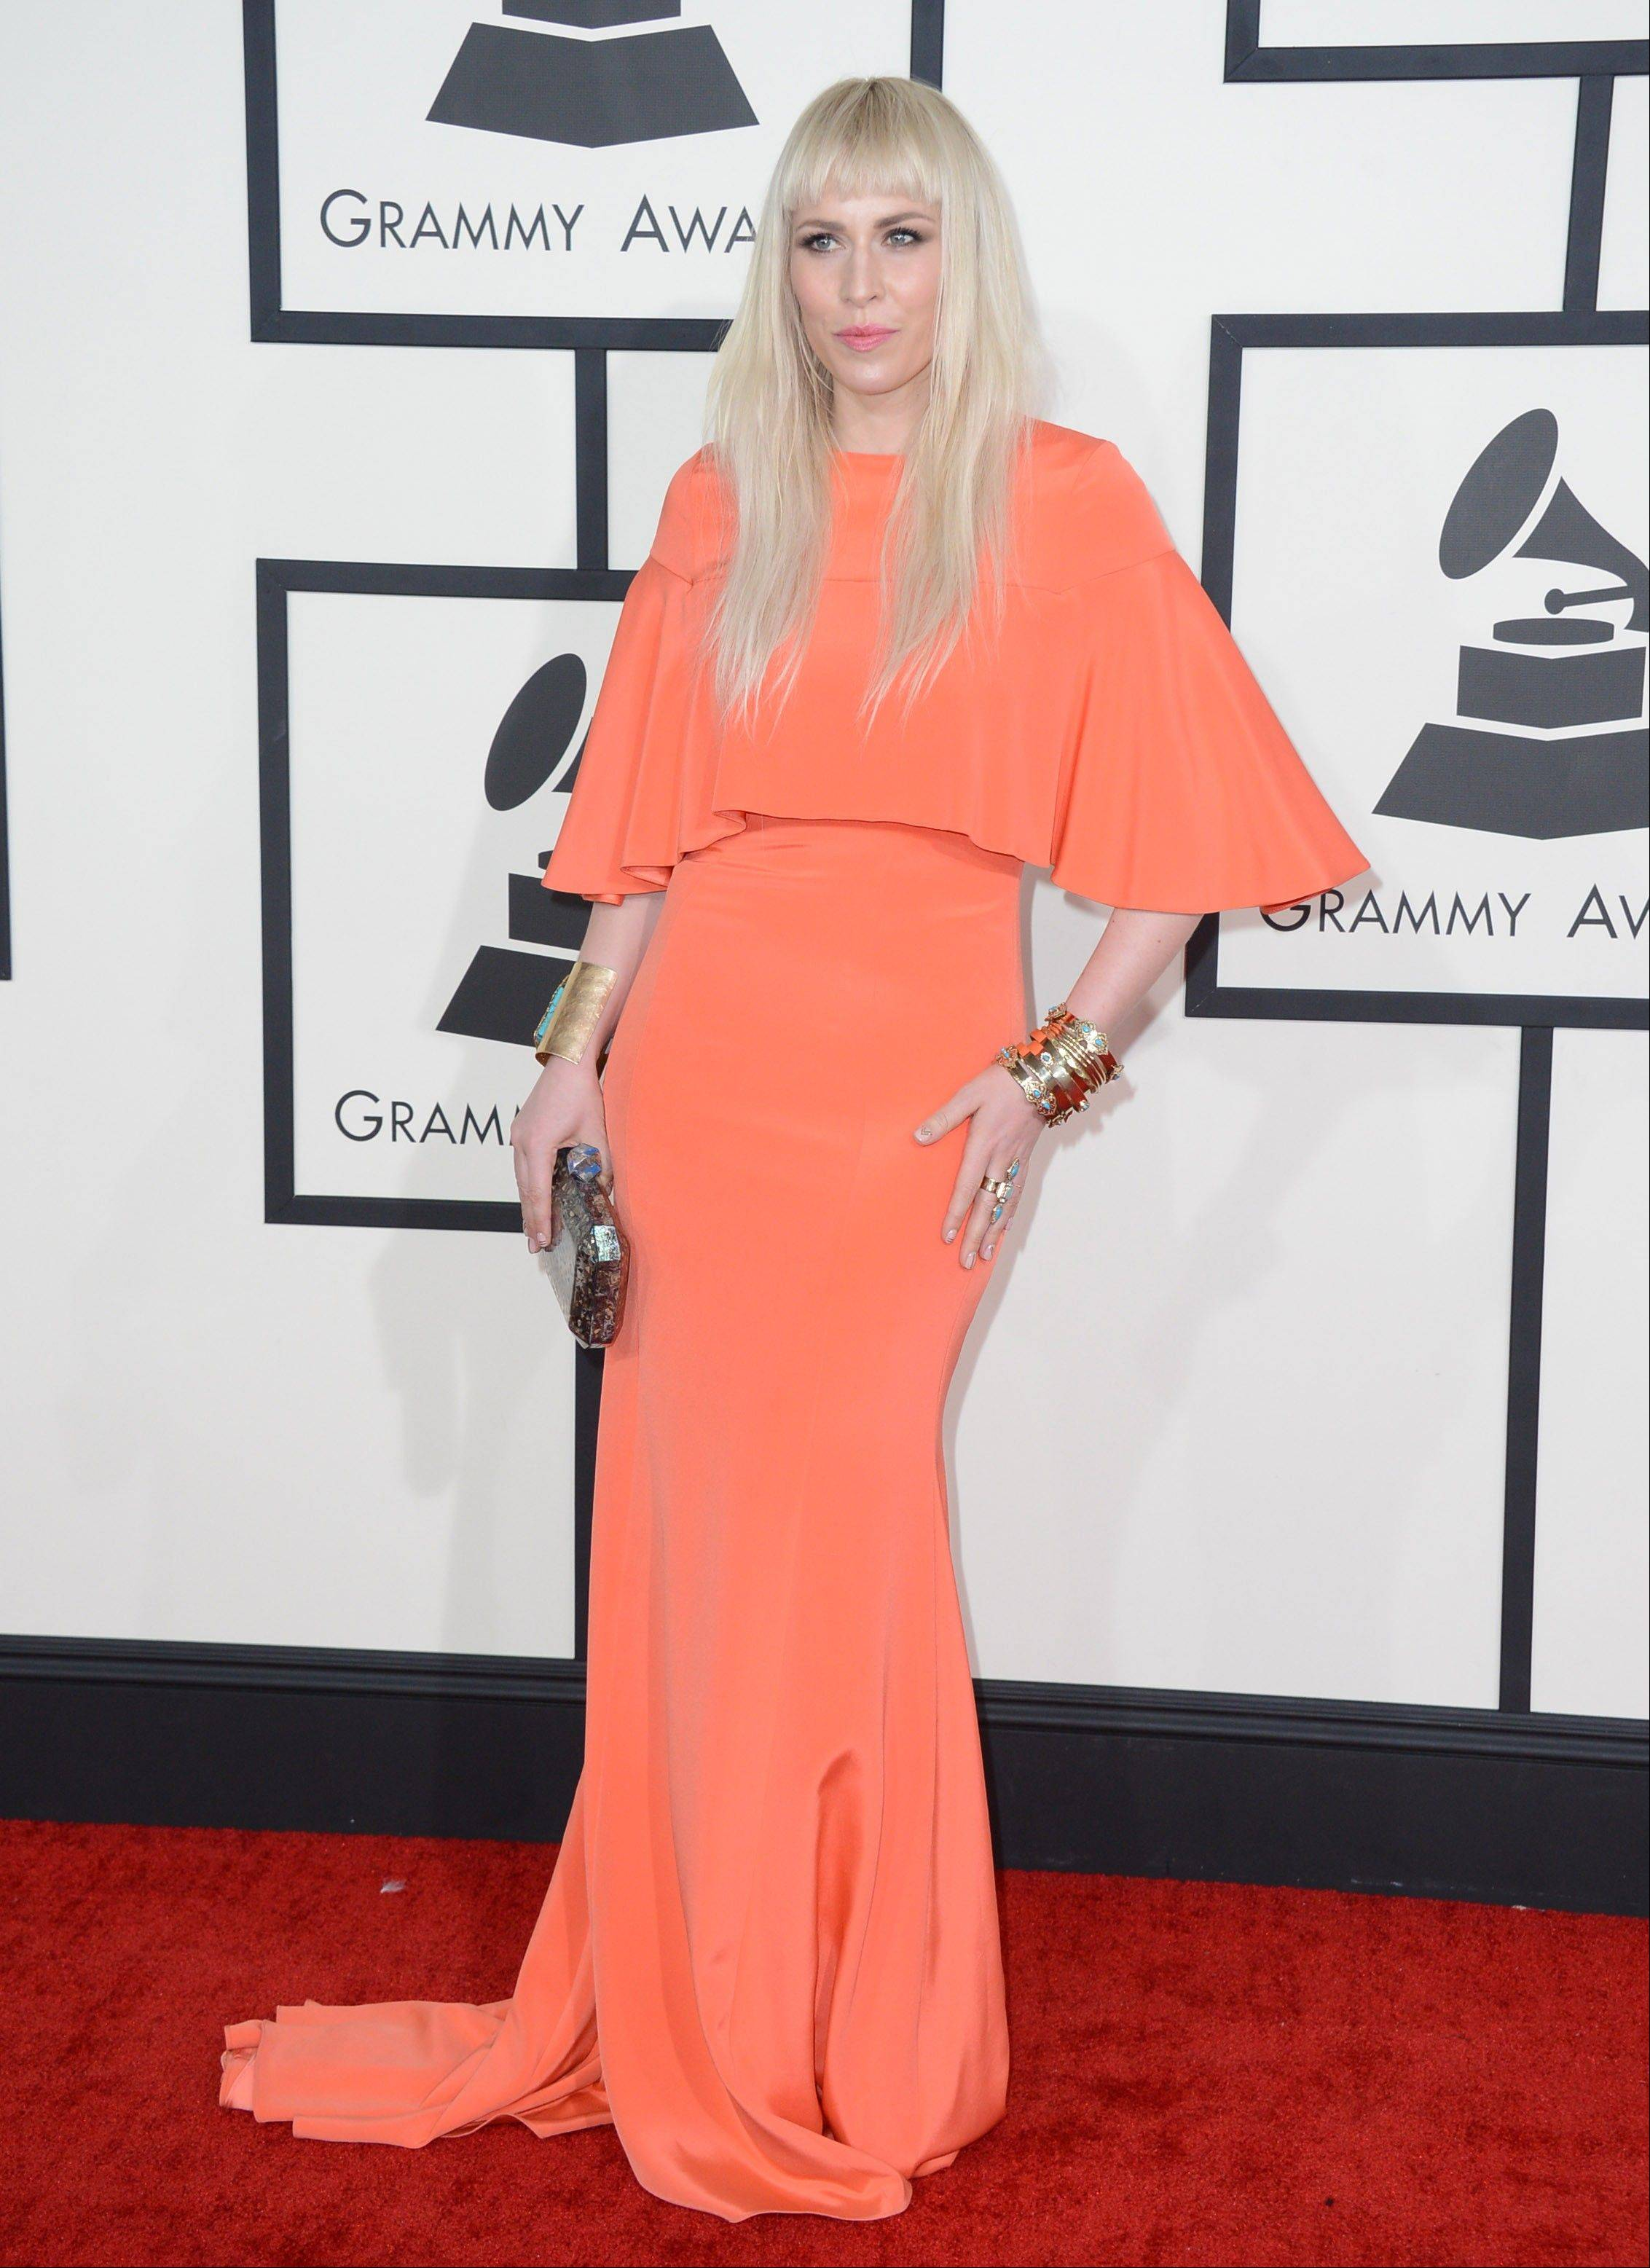 Natasha Bedingfield arrives at the 56th annual Grammy Awards at Staples Center.